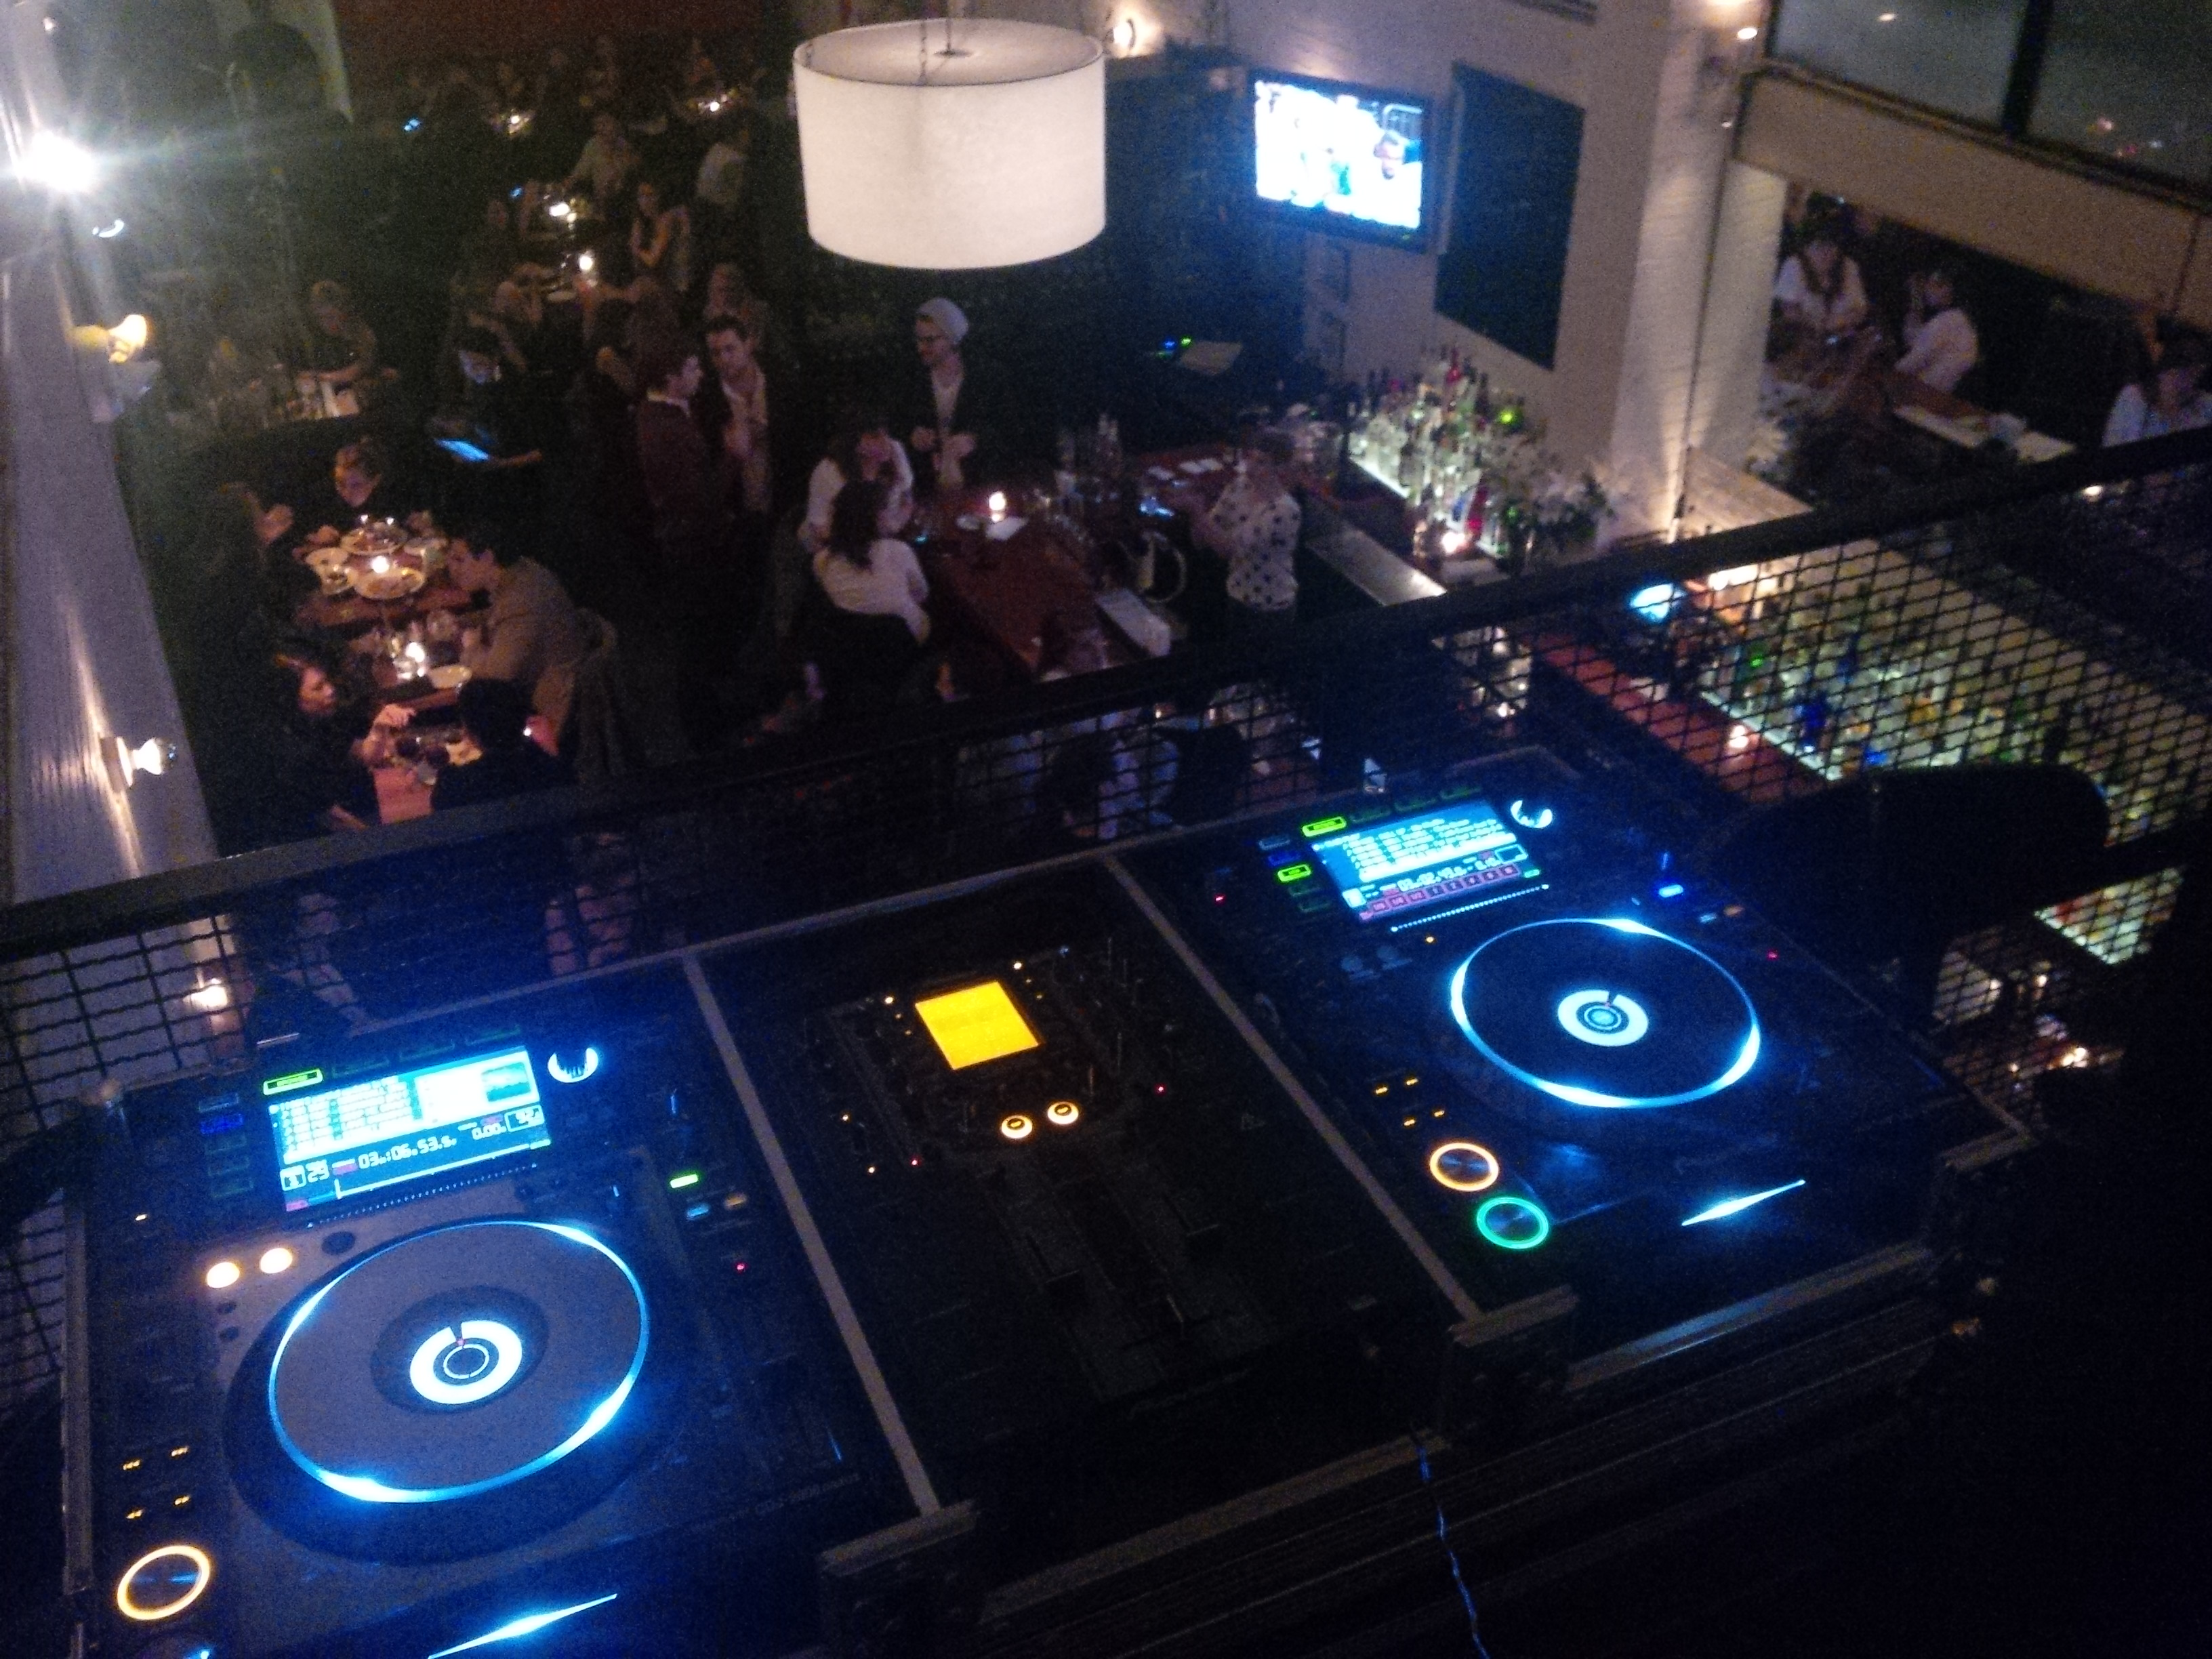 Essex, NYC DJ set-up